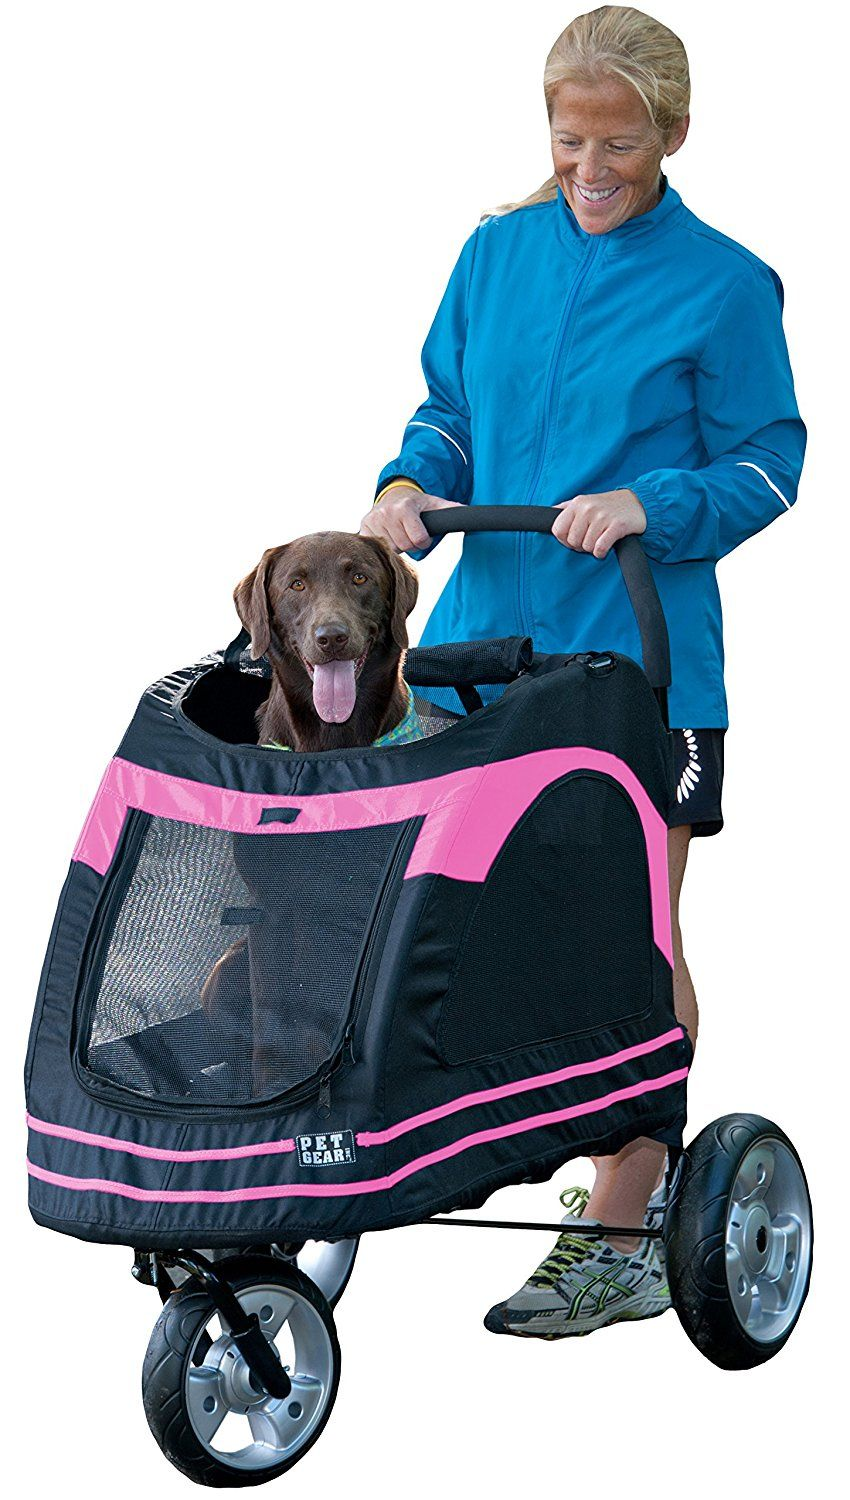 Pet Gear Roadster Pet Stroller For Cats And Dogs See This Great Image Products For Dogs Dog Stroller Pet Stroller Cat Stroller